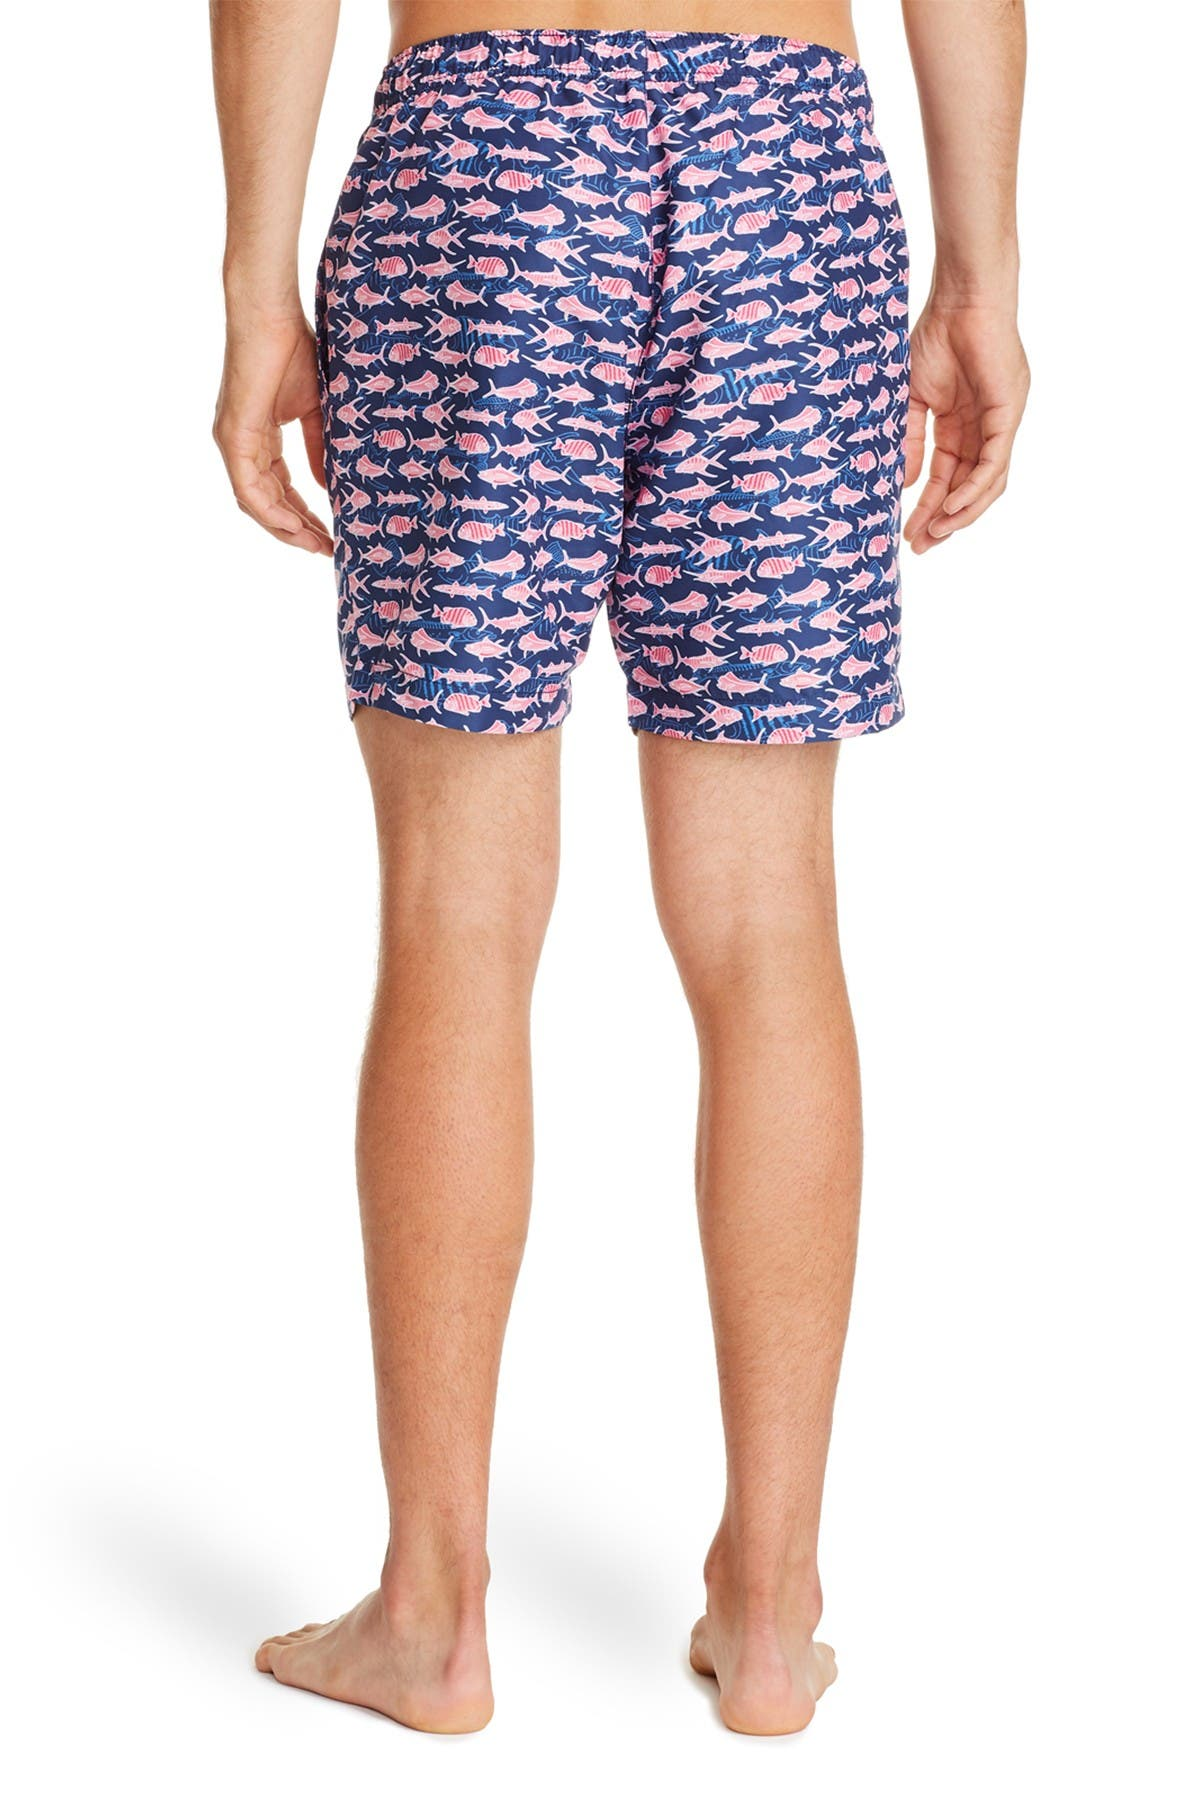 Image of CONSTRUCT Navy Pink Fish Print Swimming Trunks